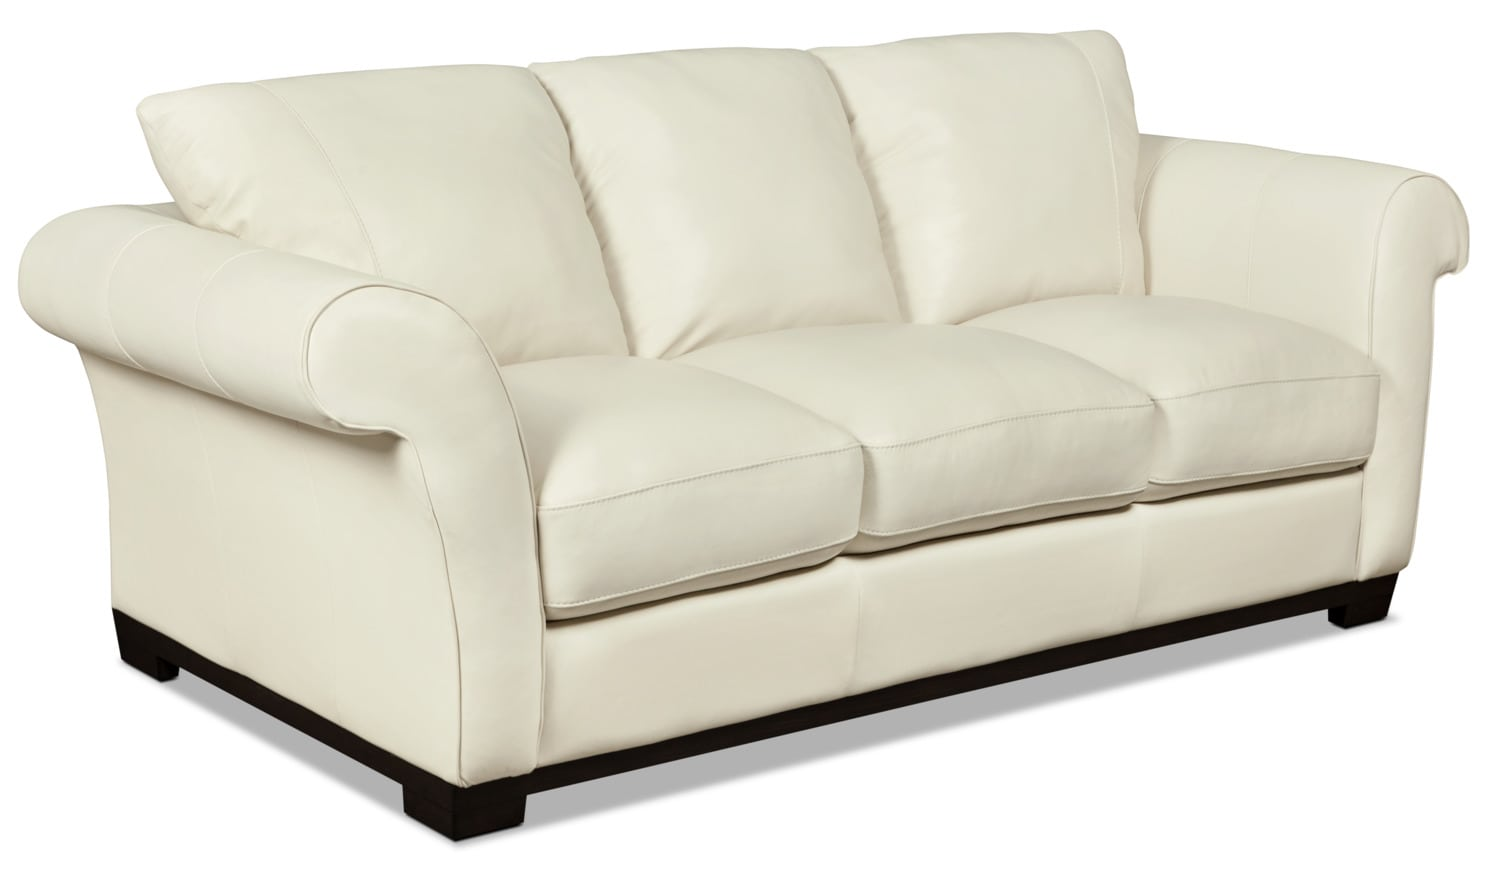 the brick cindy crawford reclining sofa sectional under 500 dollars layla genuine leather  ivory